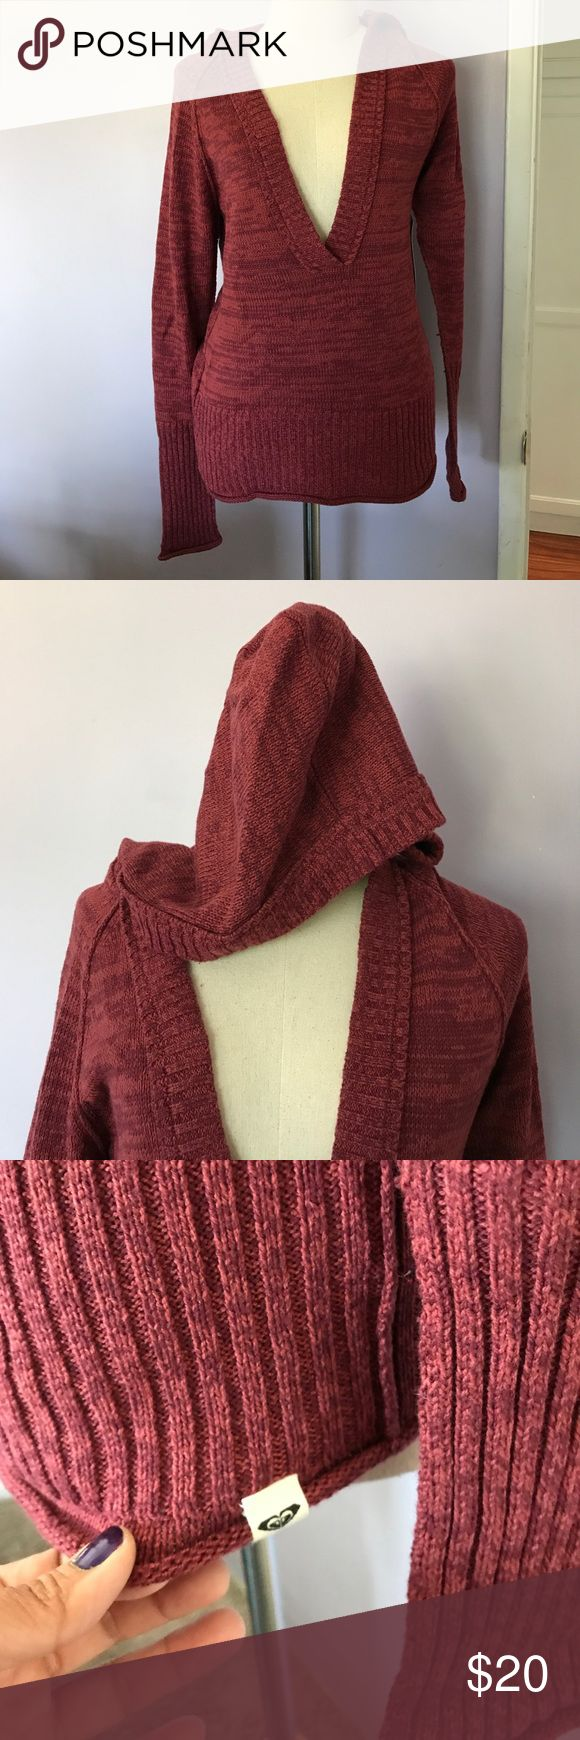 Roxy NWT reddish hooded pullover sweater Roxy NWT reddish hooded pullover sweater. Size XL juniors. Smoke free home. Roxy logo flag tag attached at the bottom left hand hem. Roxy Sweaters